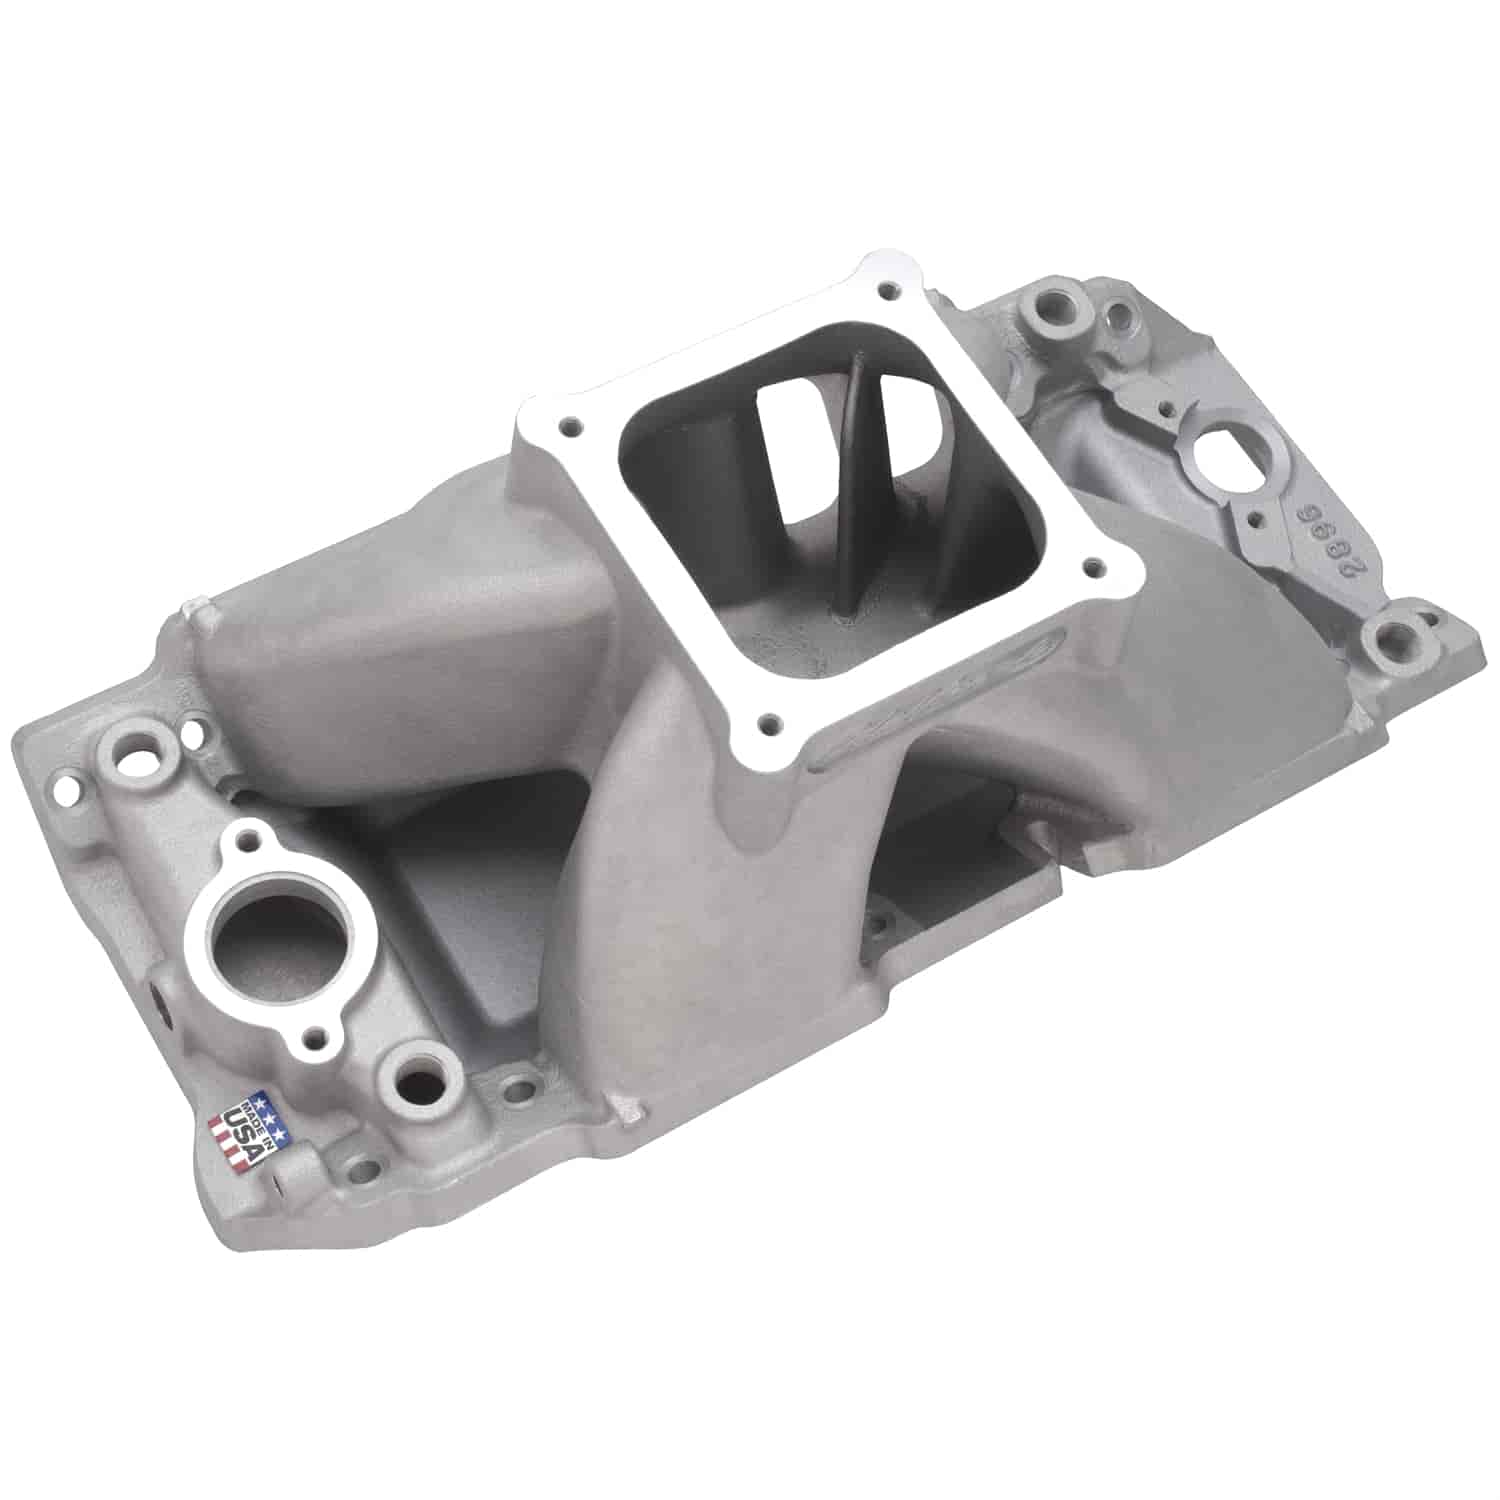 Edelbrock 2896 - Edelbrock Super Victor Series Big Block Chevy Intake Manifolds